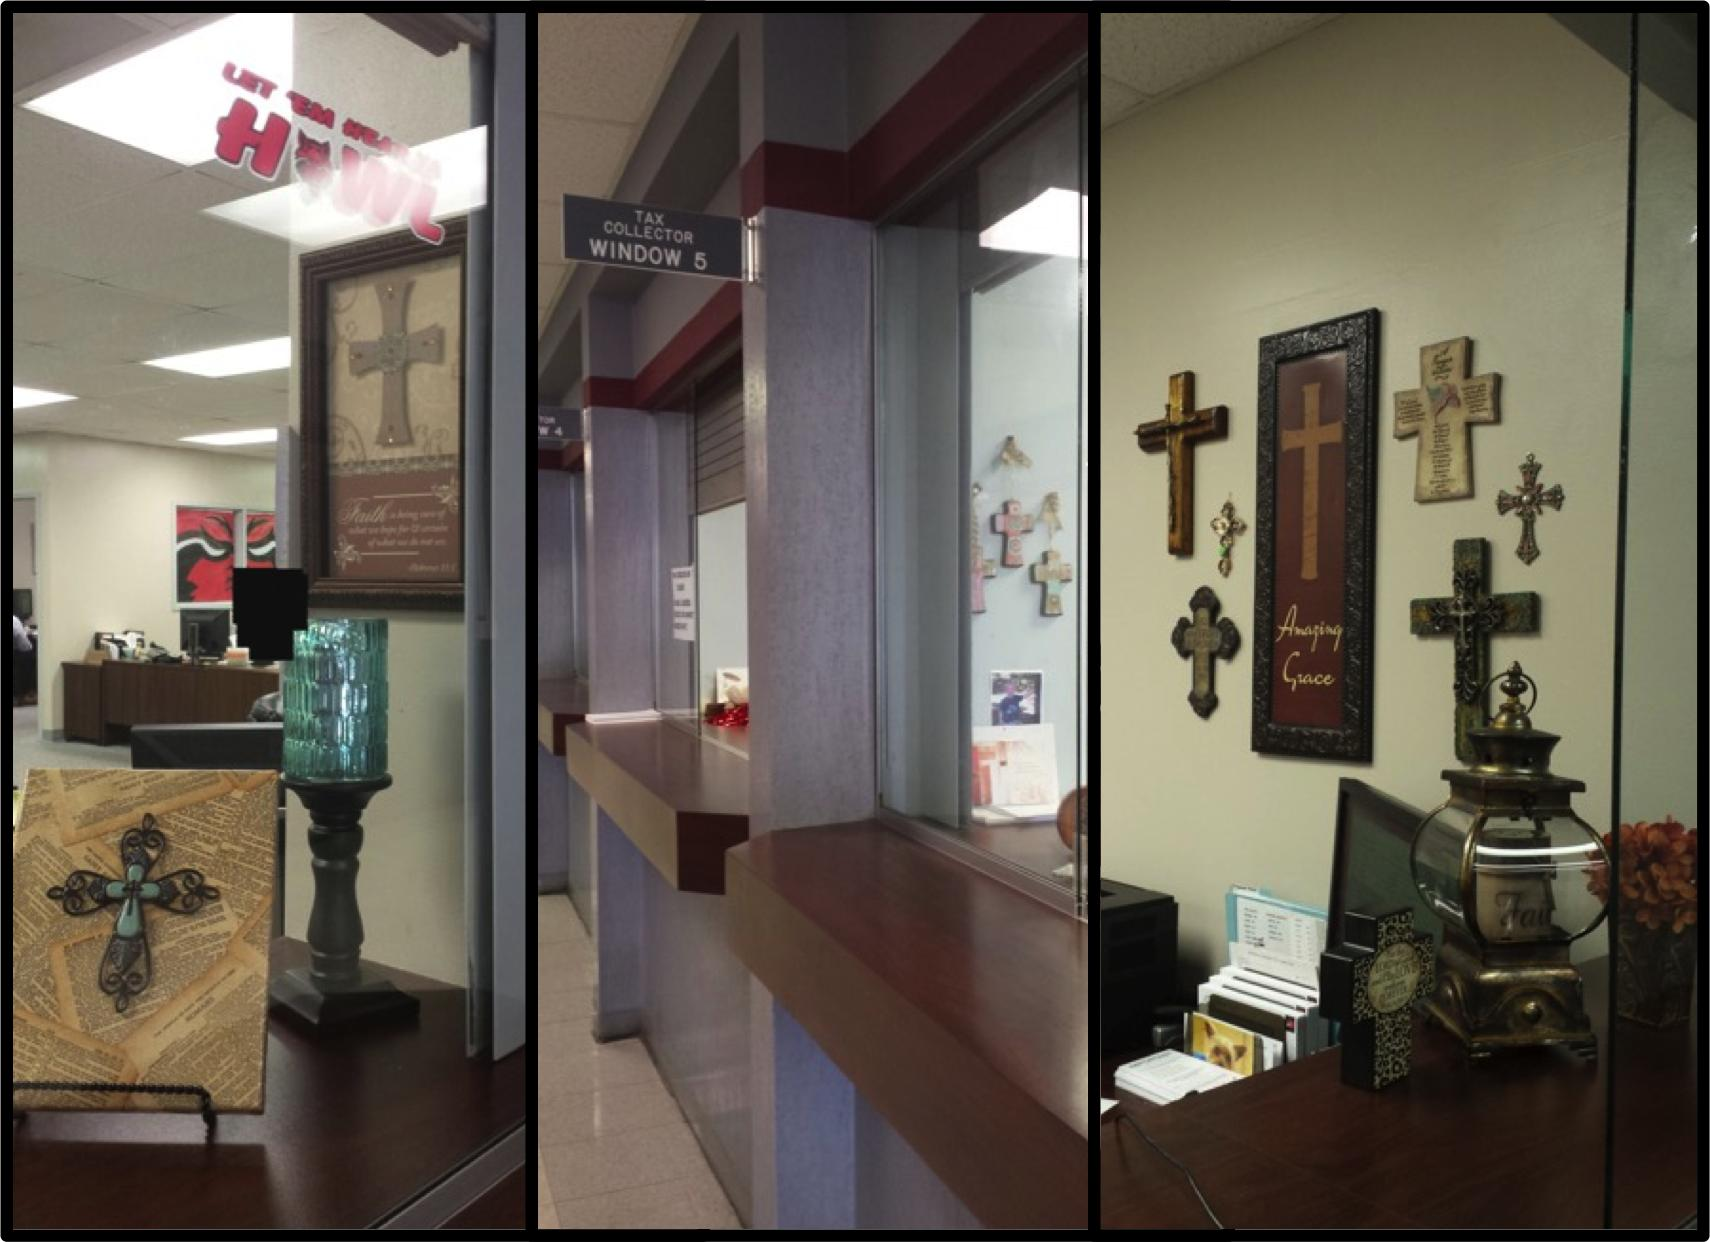 After Removing Christian Crosses from Wall, Arkansas Government Officials Put Them Right Back Up